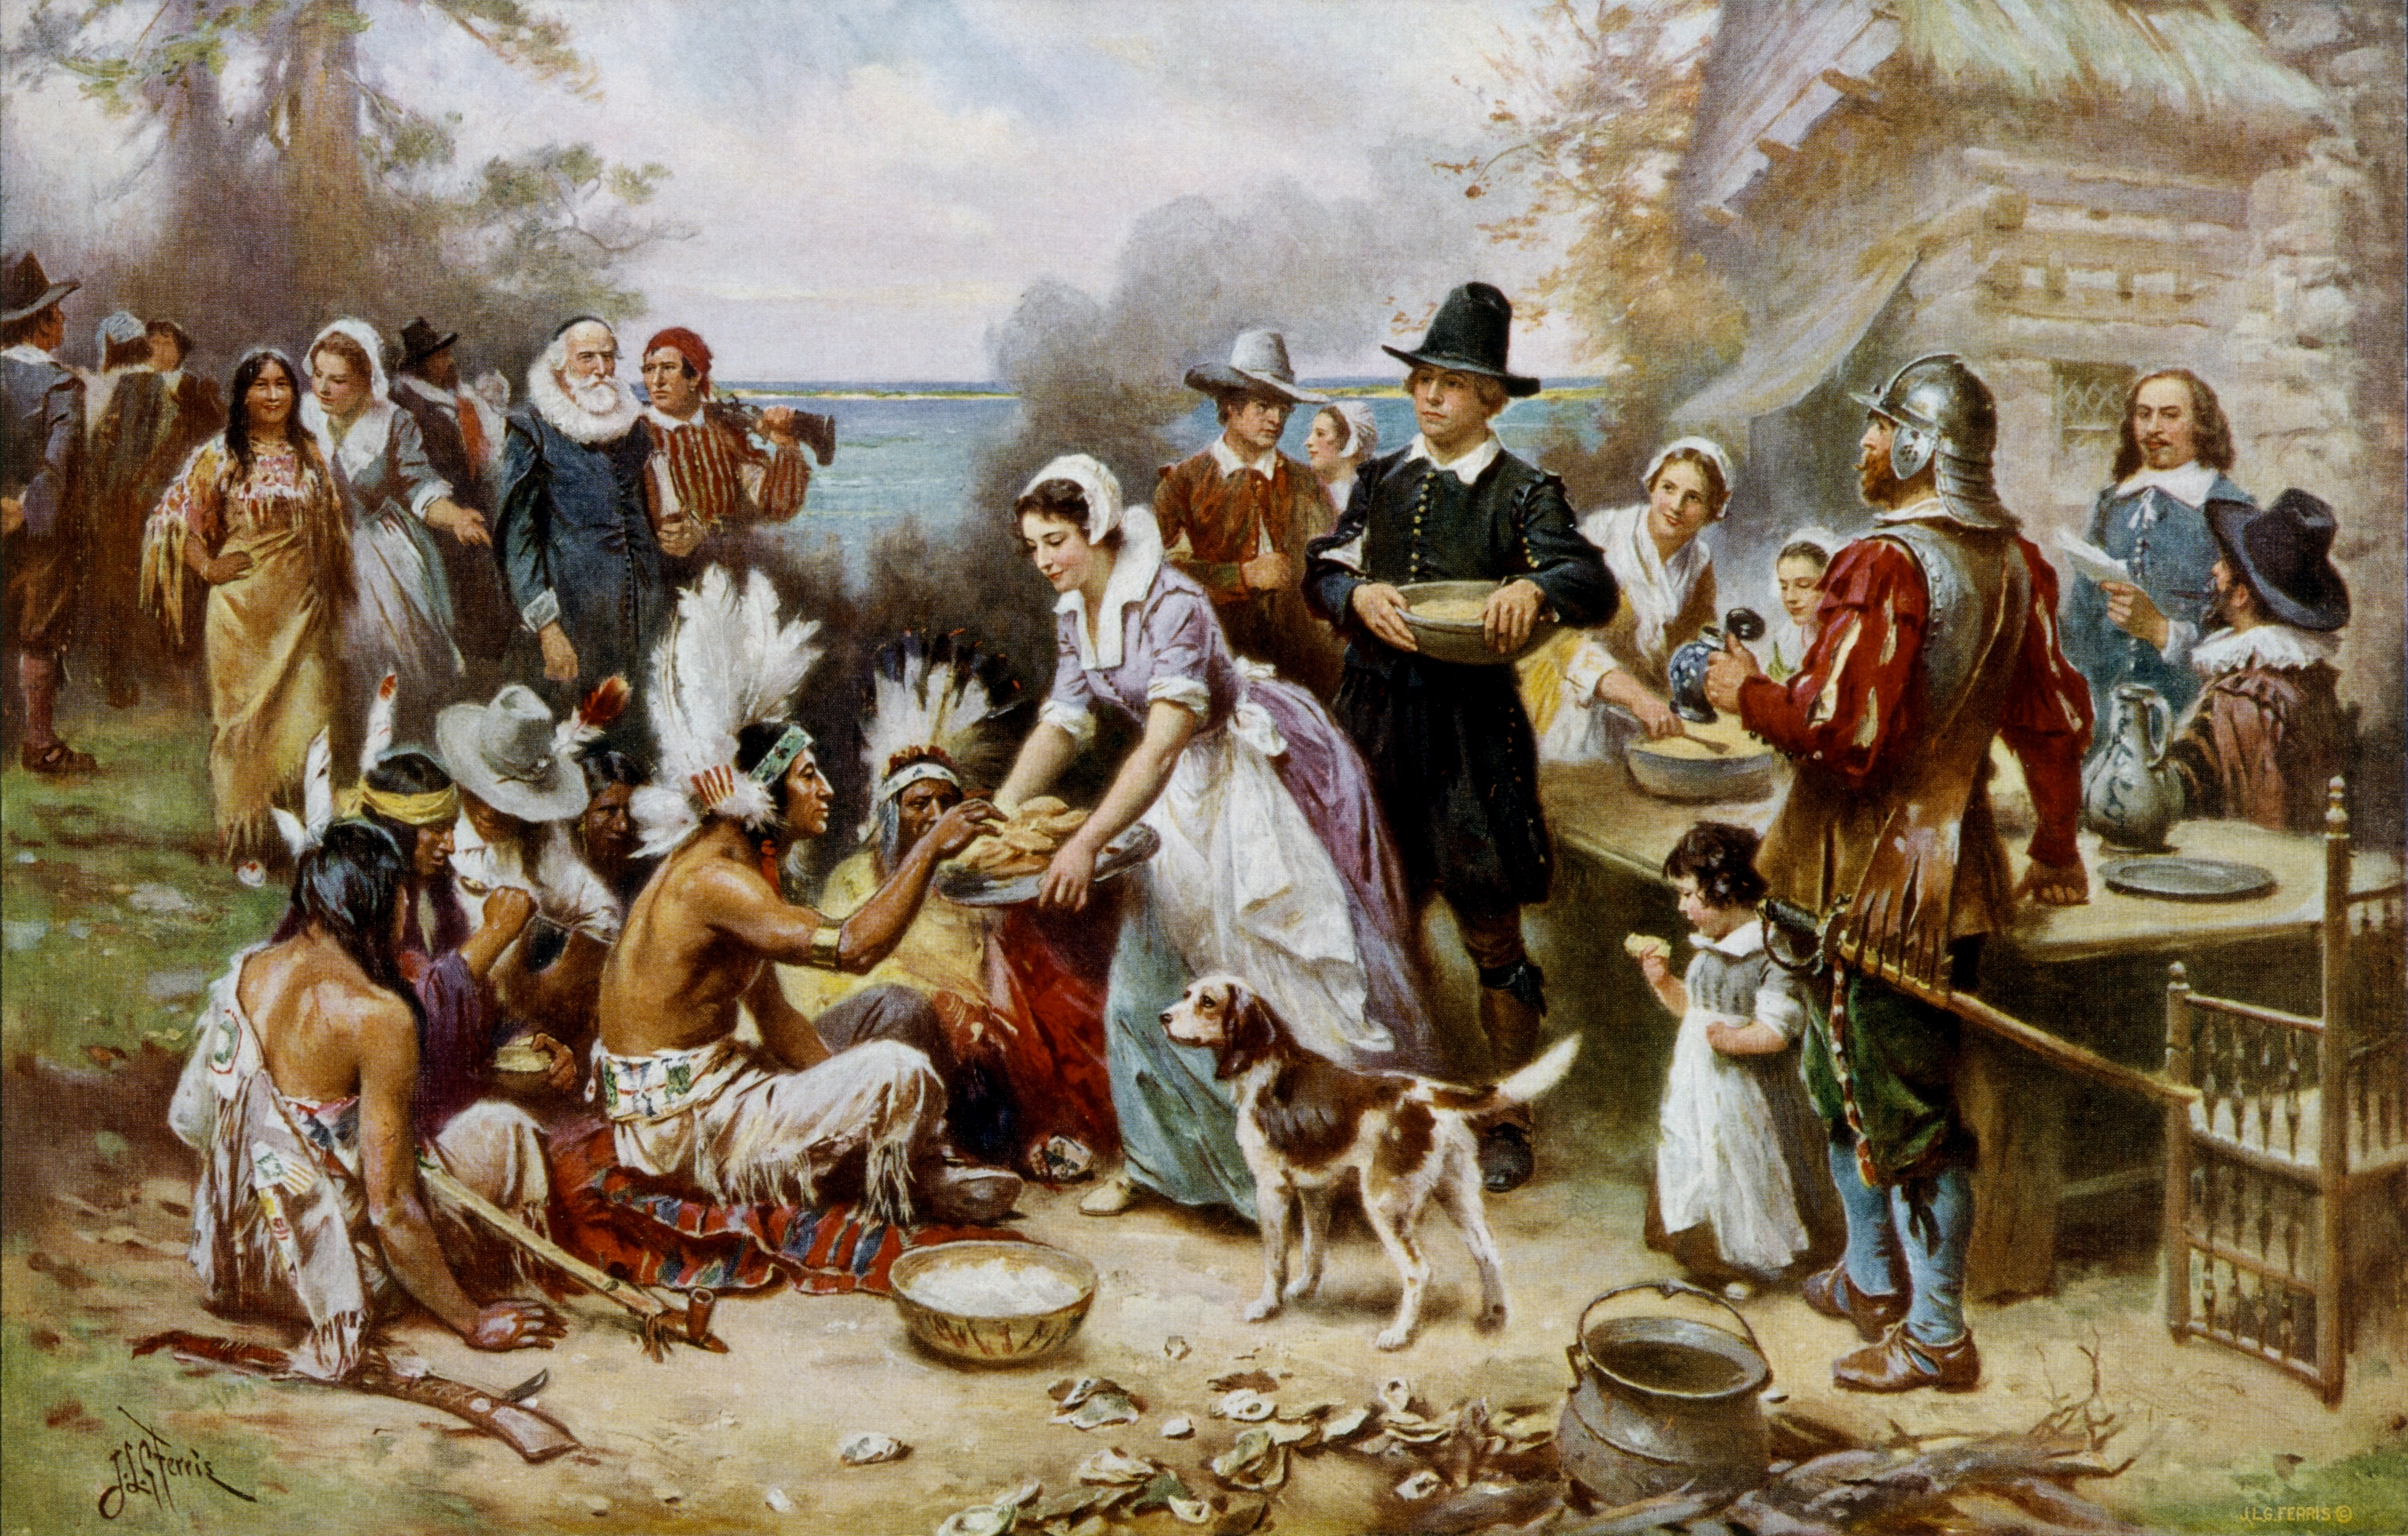 Elliot S Pilgrim Ancestor Spotted In Classic Thanksgiving